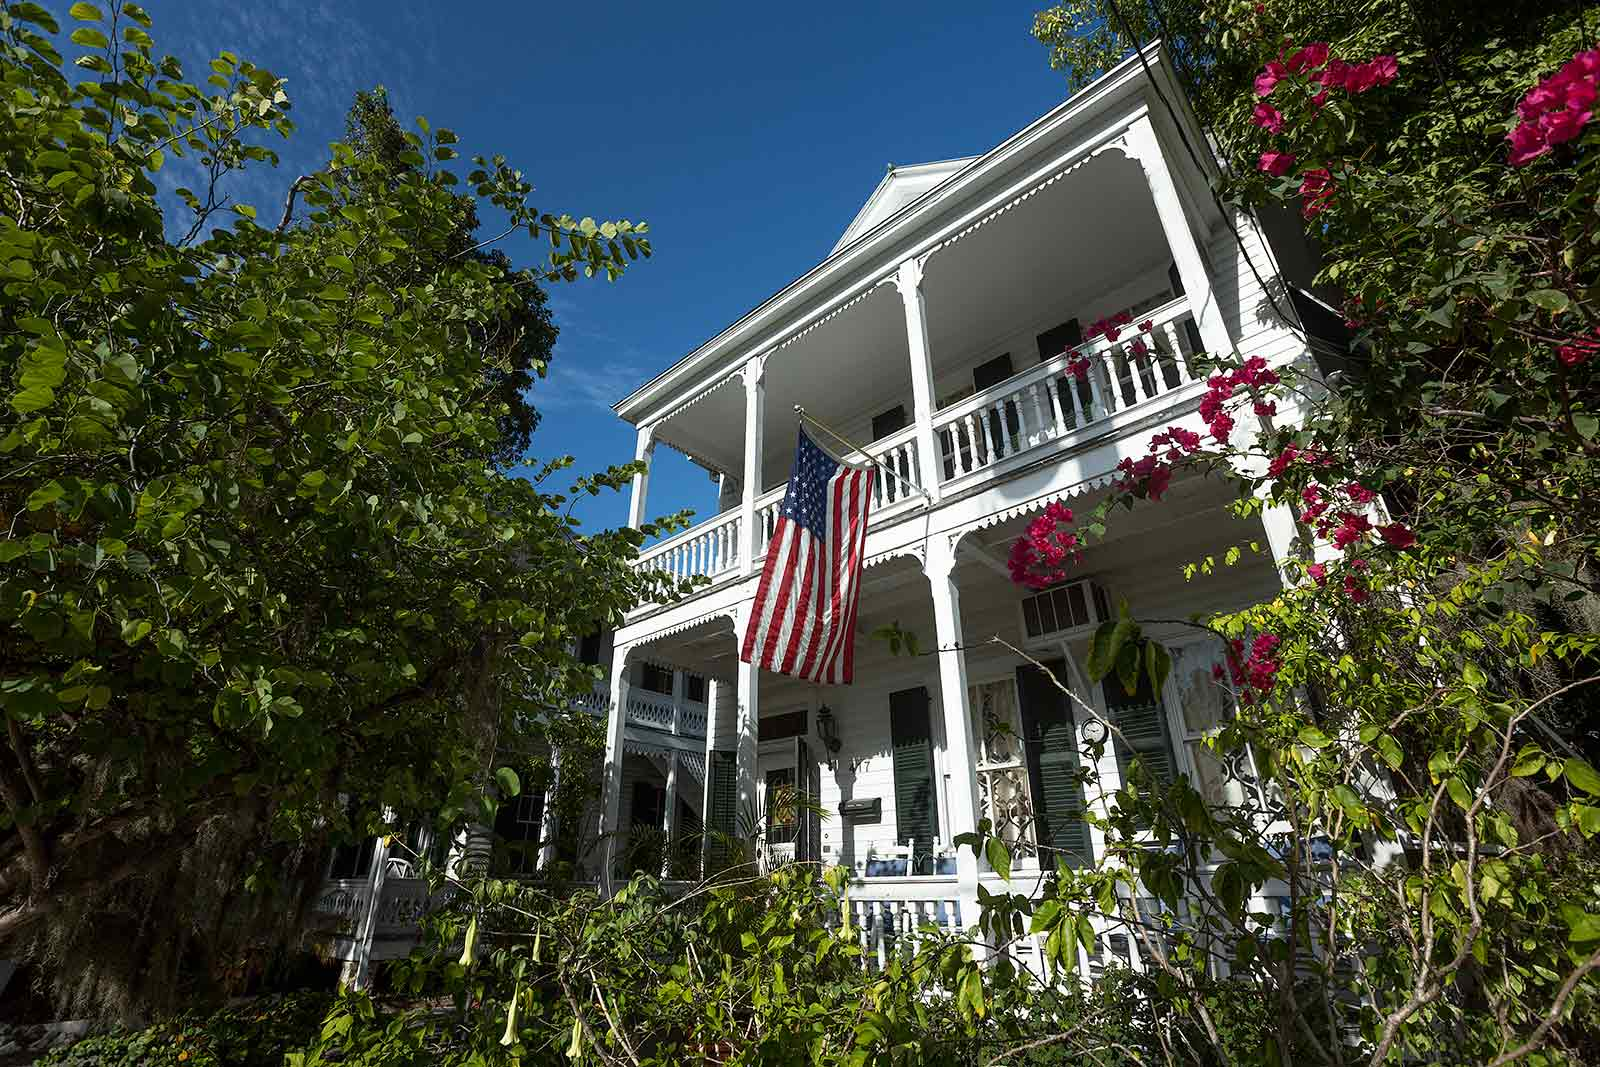 Key West houses feature fanciful elements like slim columns topped with decorative wooden details.